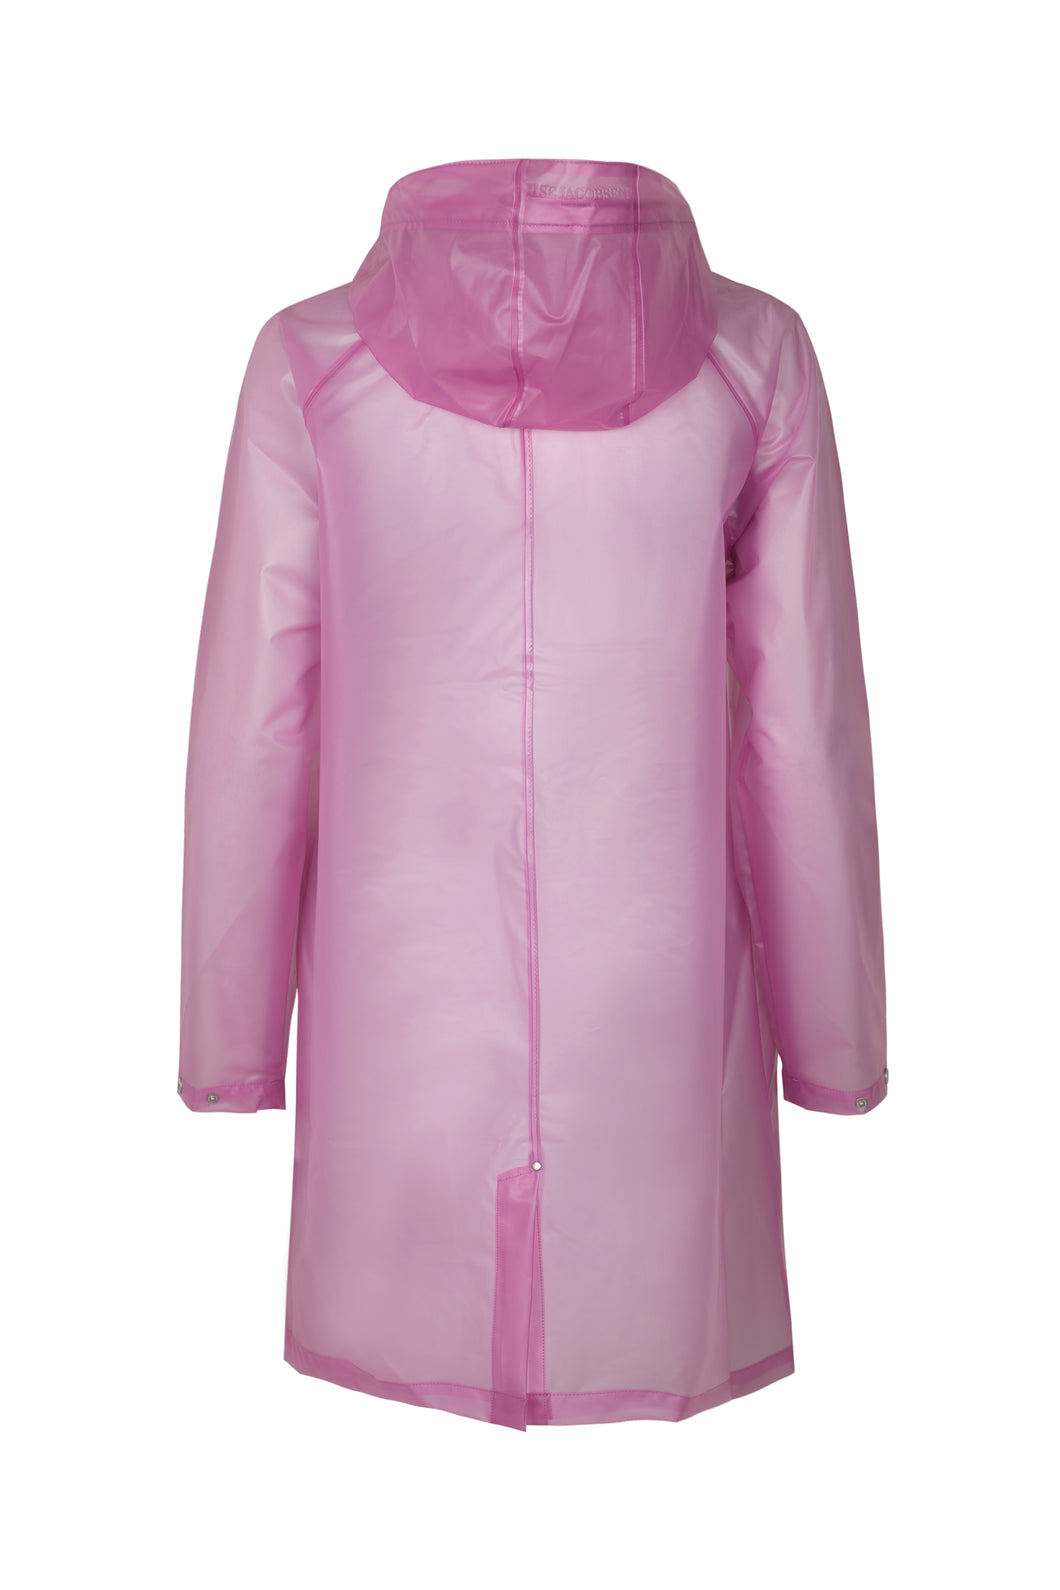 Clear Raincoat Rose Pink